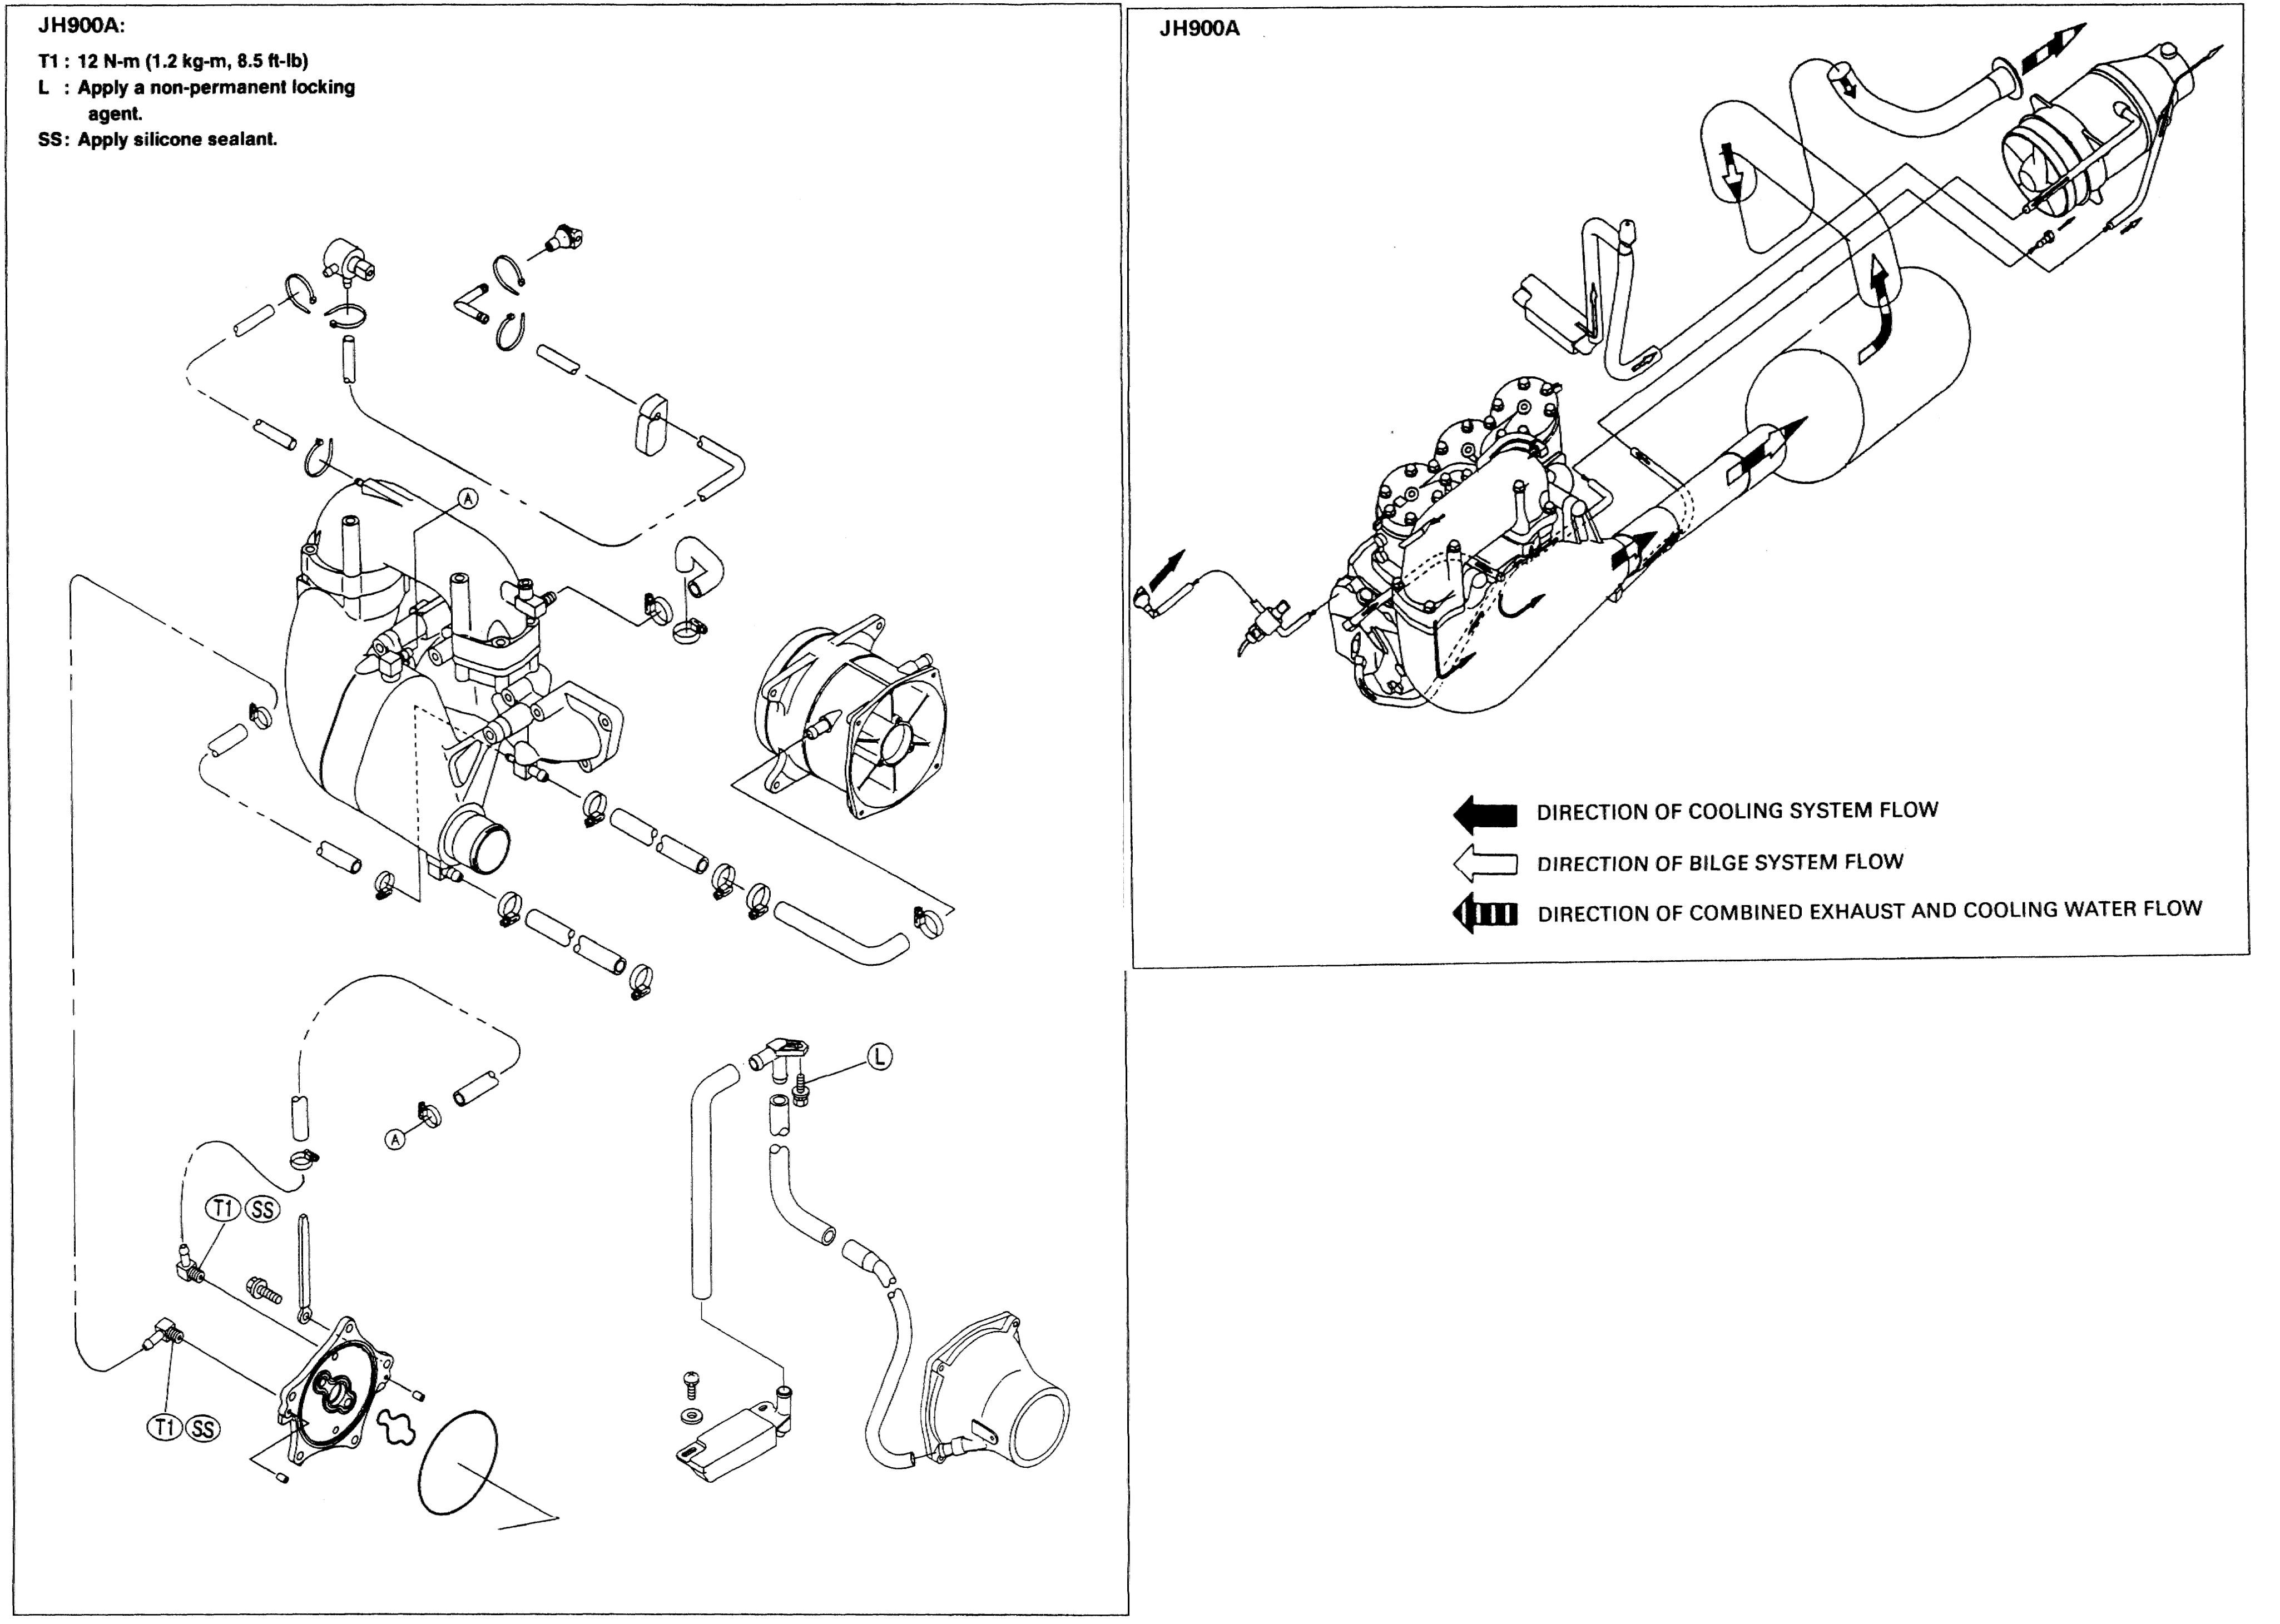 Coolant System Diagram 95 Kawasaki Zxi 900 Triple Carb Need Cooling System Hose Routing Of Coolant System Diagram